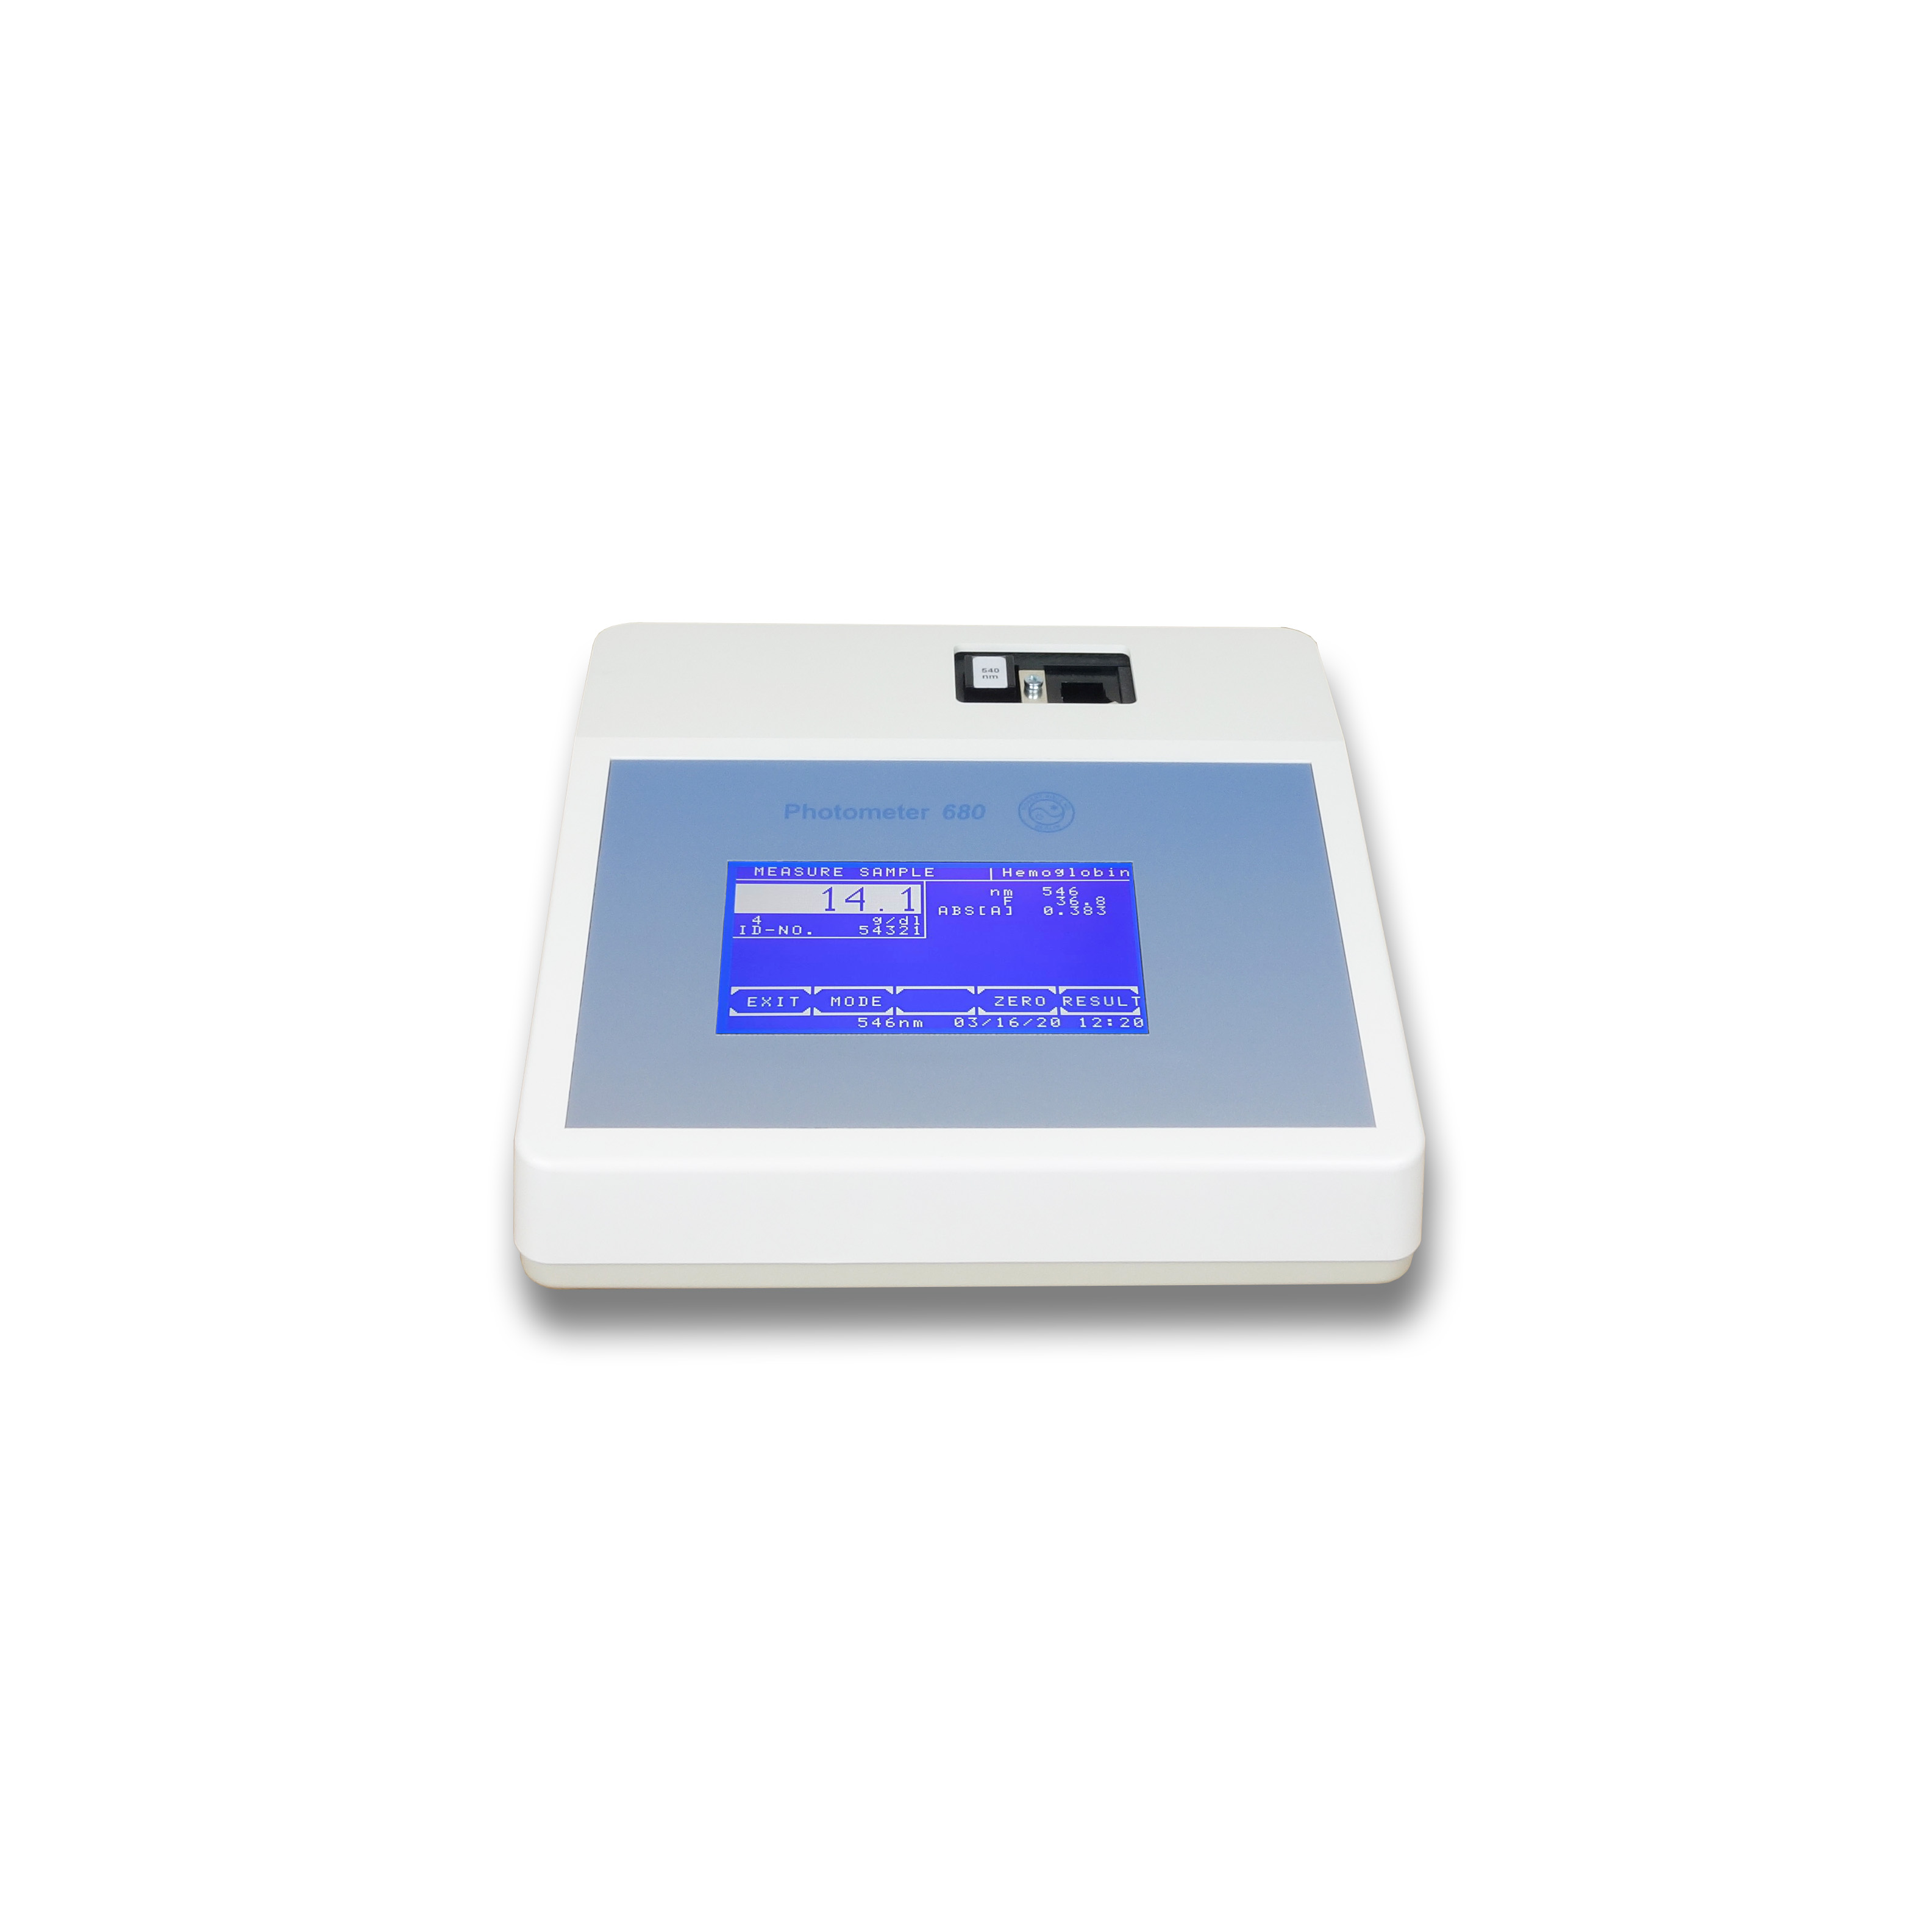 Photometer 680 with discrete filters